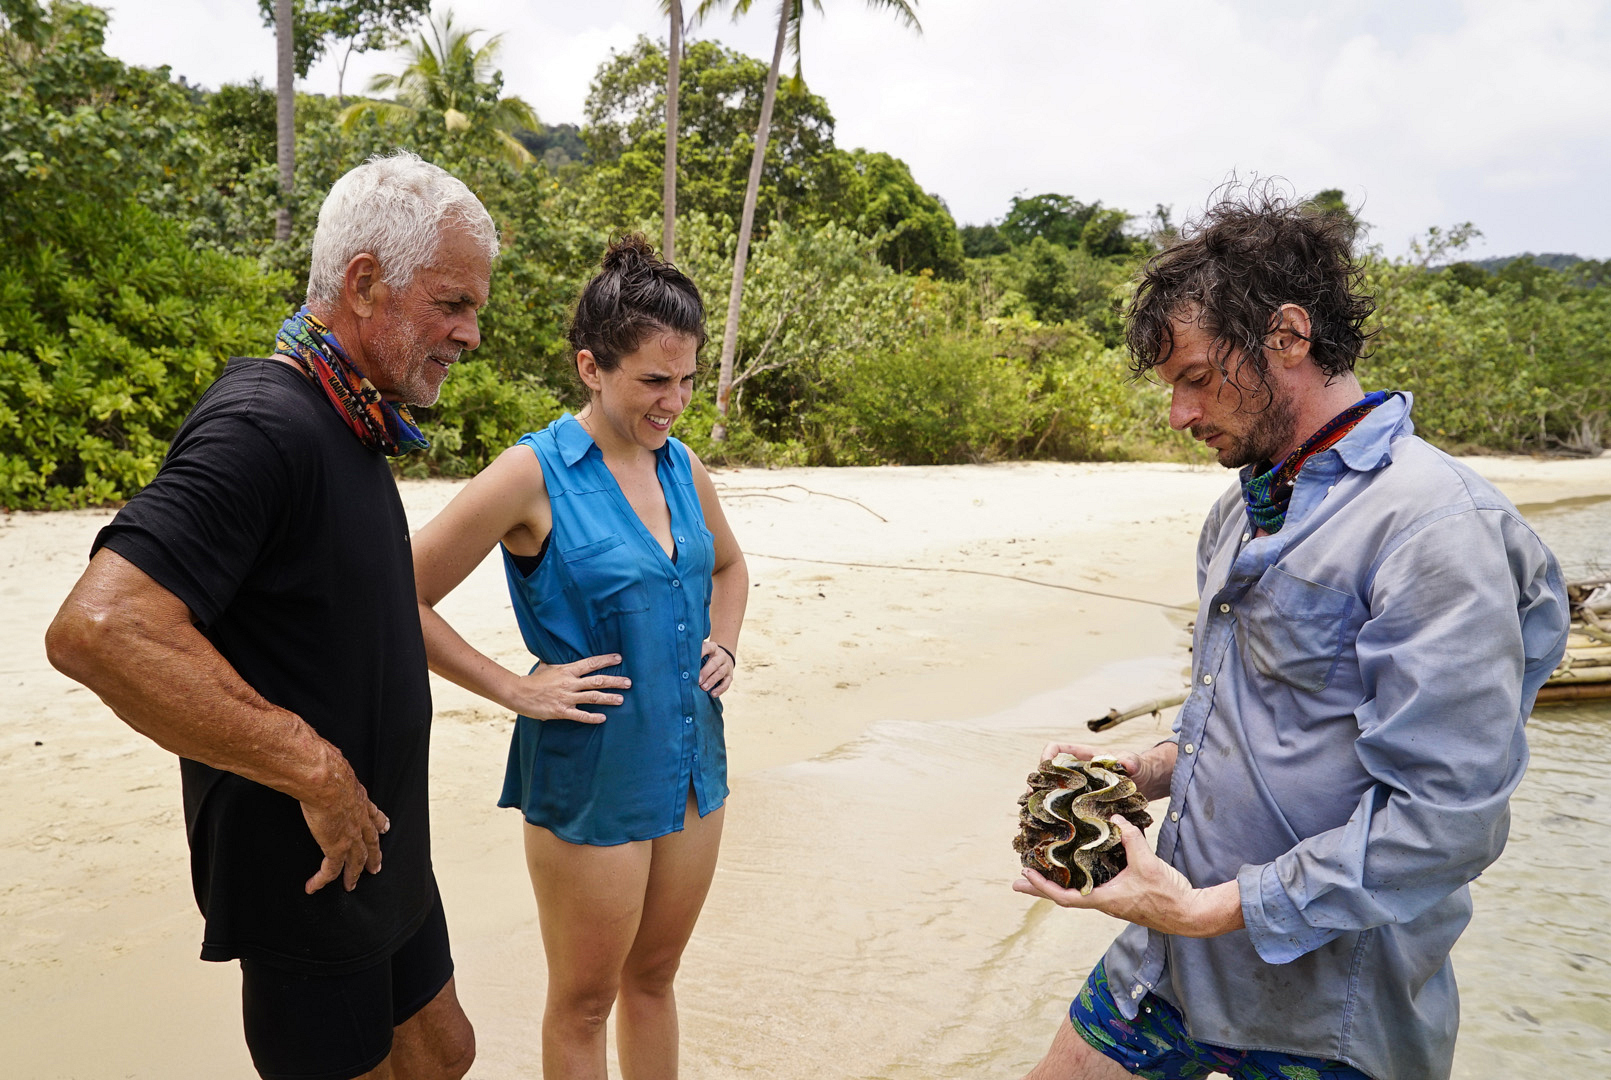 Joe, Aubry, and Neal congregate around a clam.